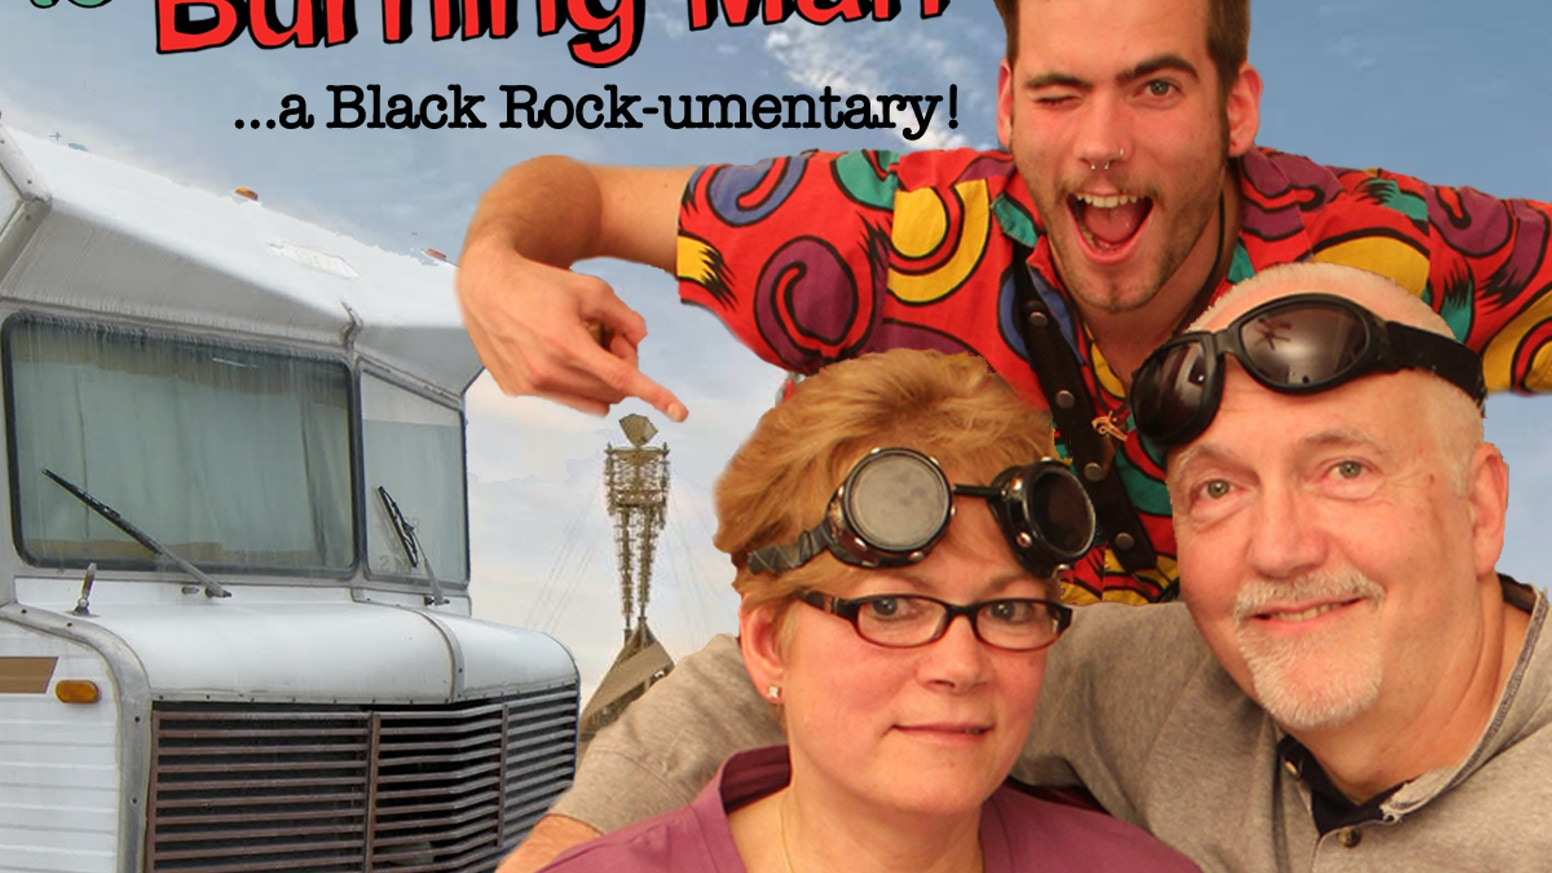 Taking My Parents to Burning Man - ...a Black Rock-umentary!